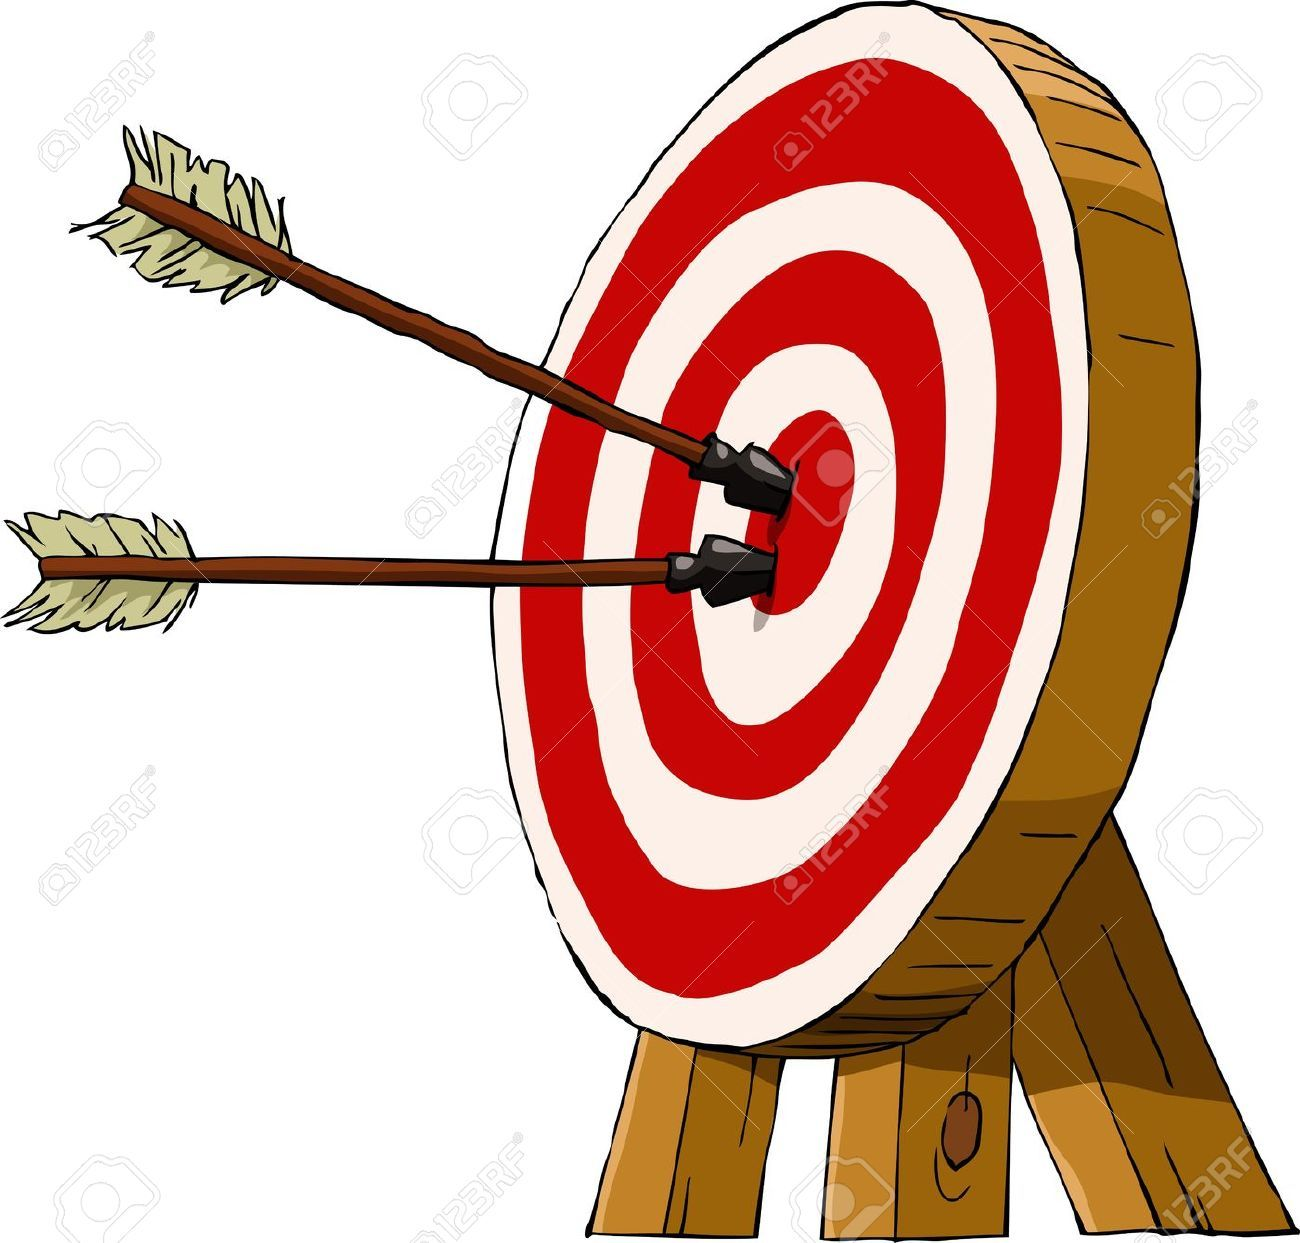 graphic royalty free stock Archery clipart. Cliparts stock vector and